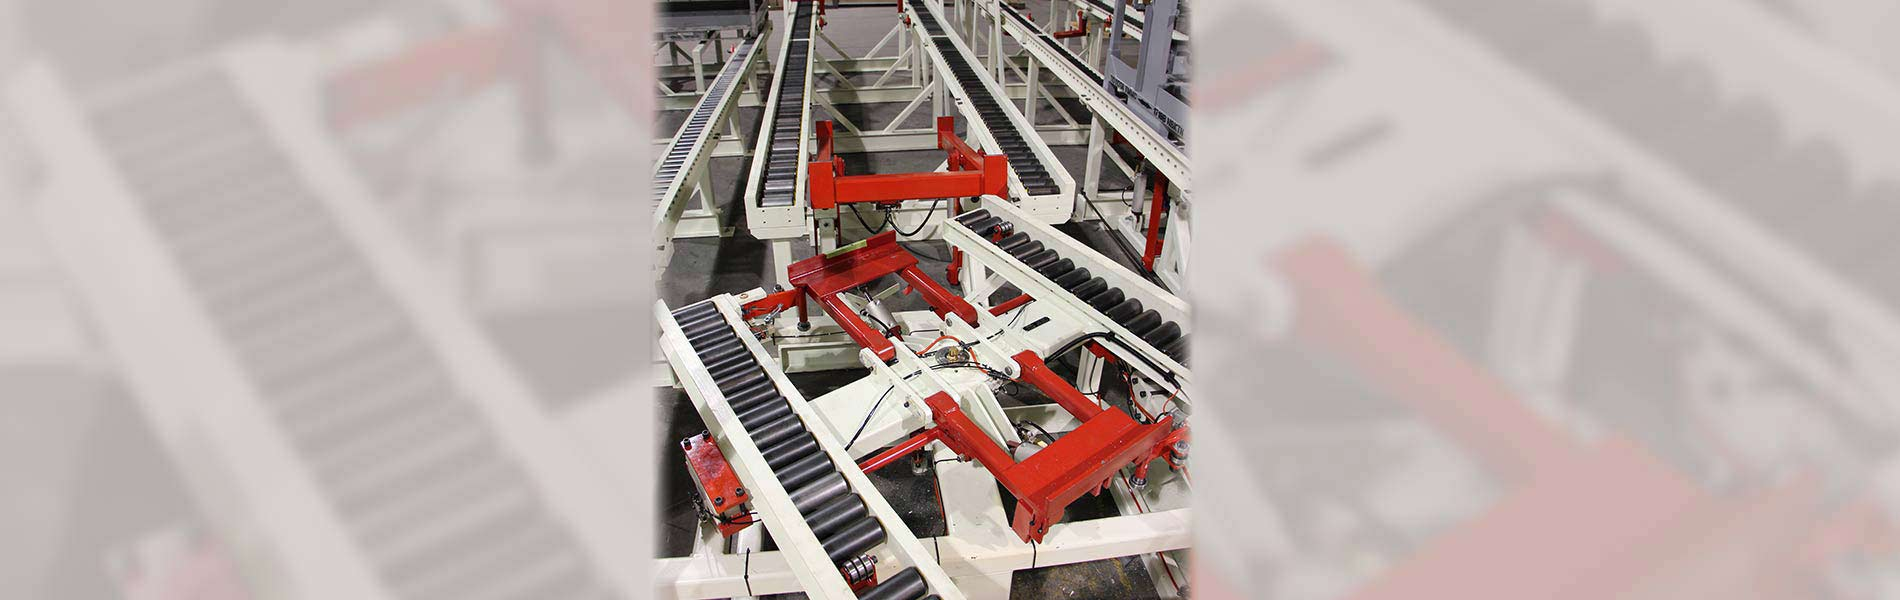 Custom Conveyors designed & manufactured in the US by Givens Lifting Systems Inc.